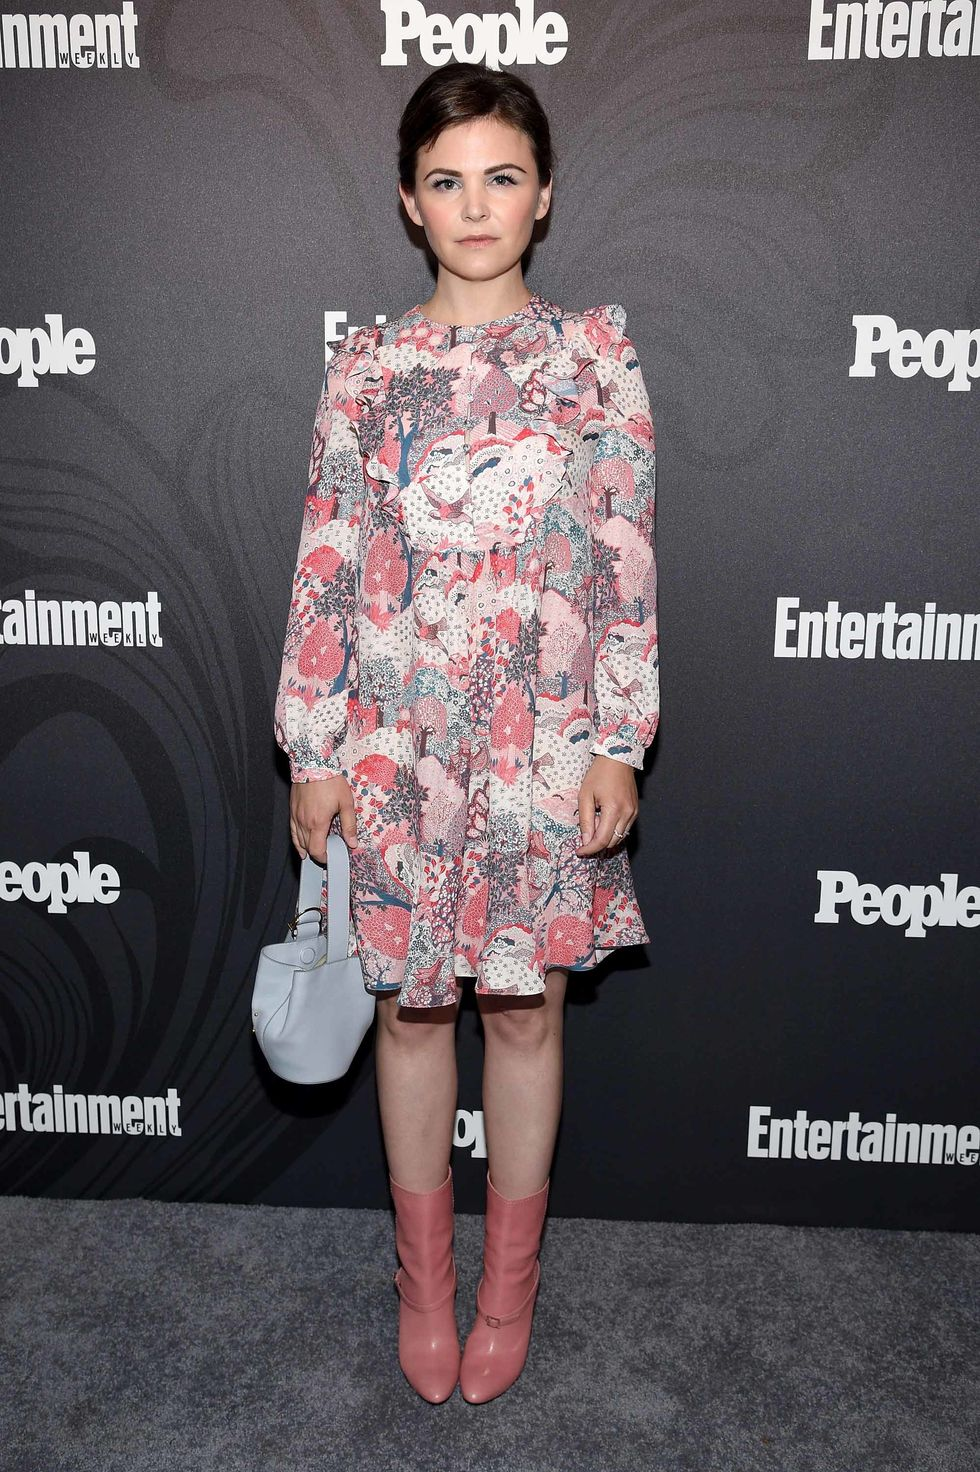 Ginnifer Goodwin in a short print dress and pink boots.